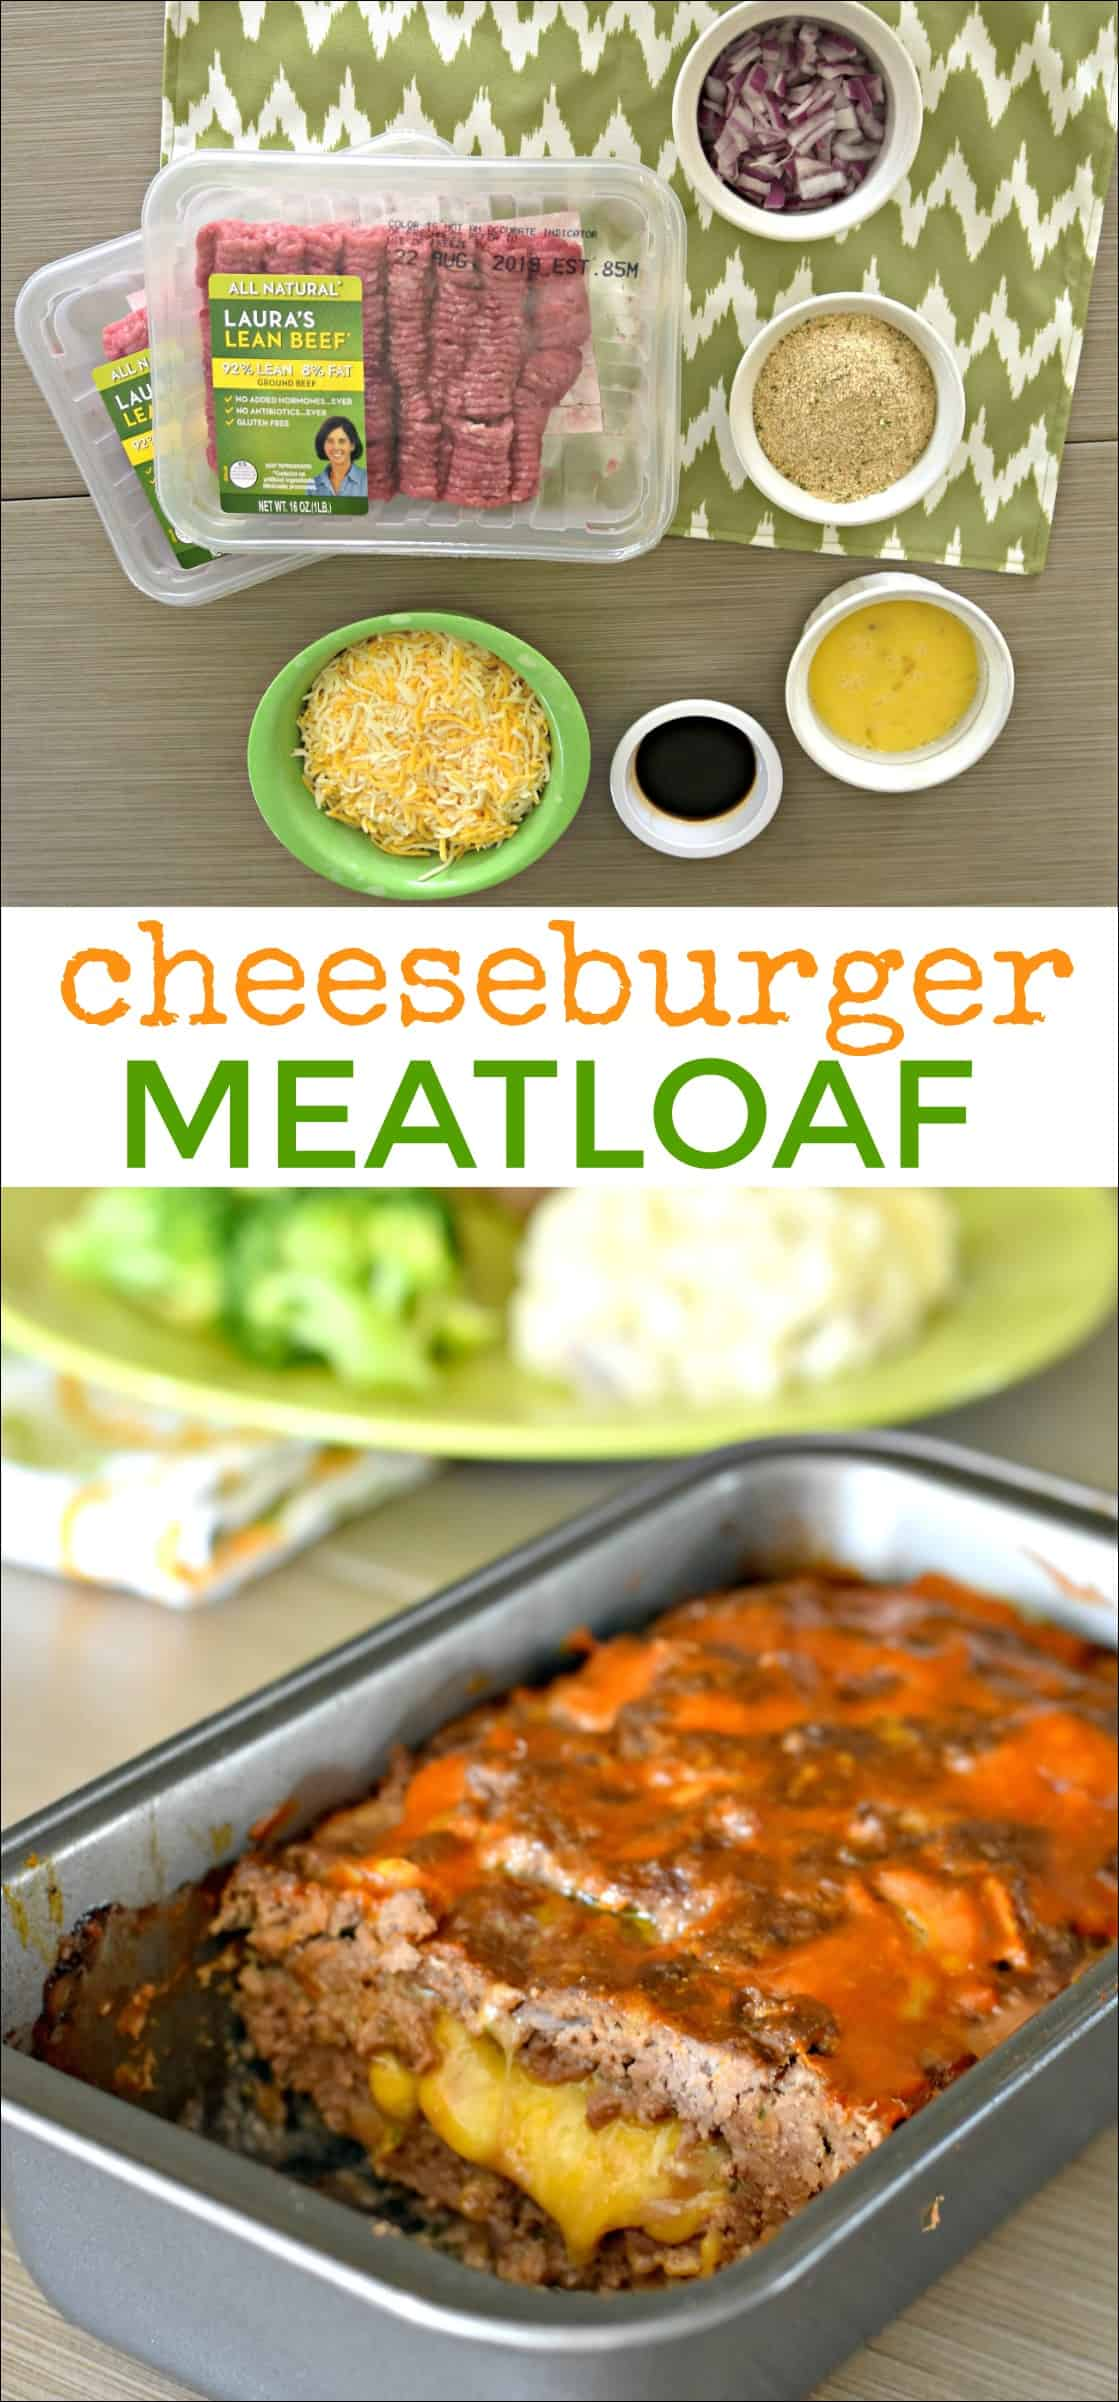 #ad This Cheeseburger Meatloaf Recipe is the perfect meal for a busy weeknight. Super tasty and cheesy! It is easy to make with Laura's Lean Ground Beef. @LaurasLean #LaurasLean #NVREVR #noantibiotics #noaddedhormones #allnatural